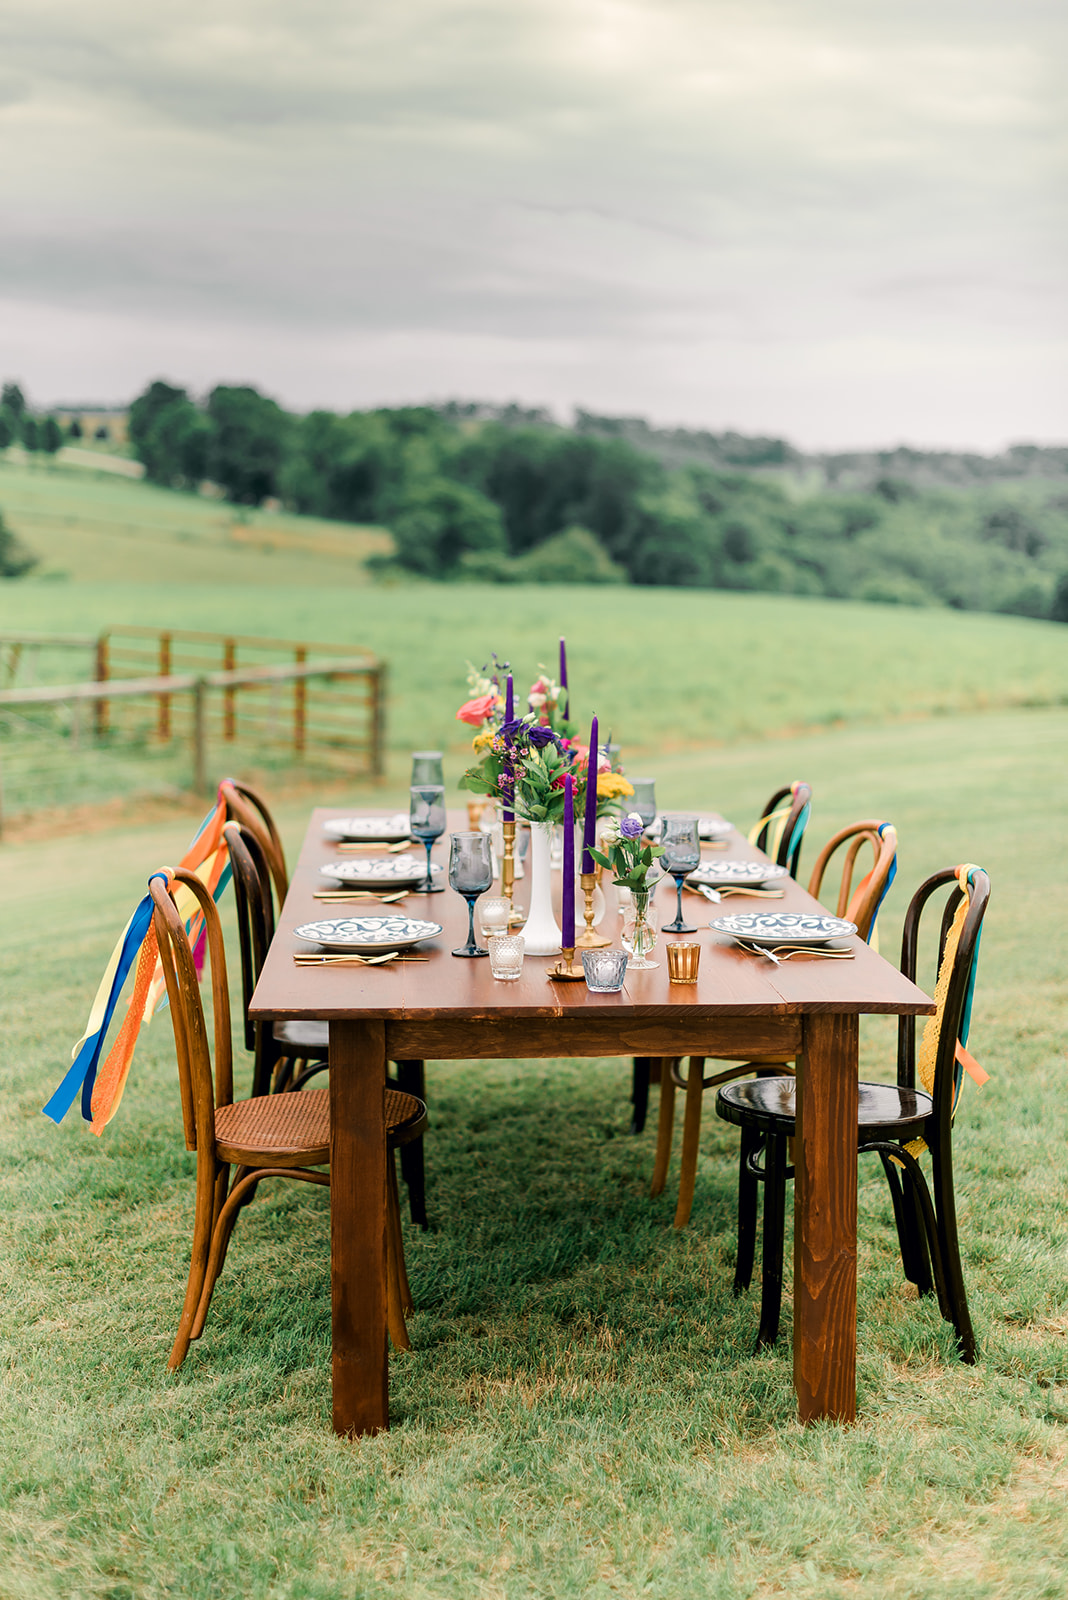 Fun & Colorful Barn Wedding Tablescape at Heaven Sent Farms in Avella Dawn Derbyshire Photography (24).jpg